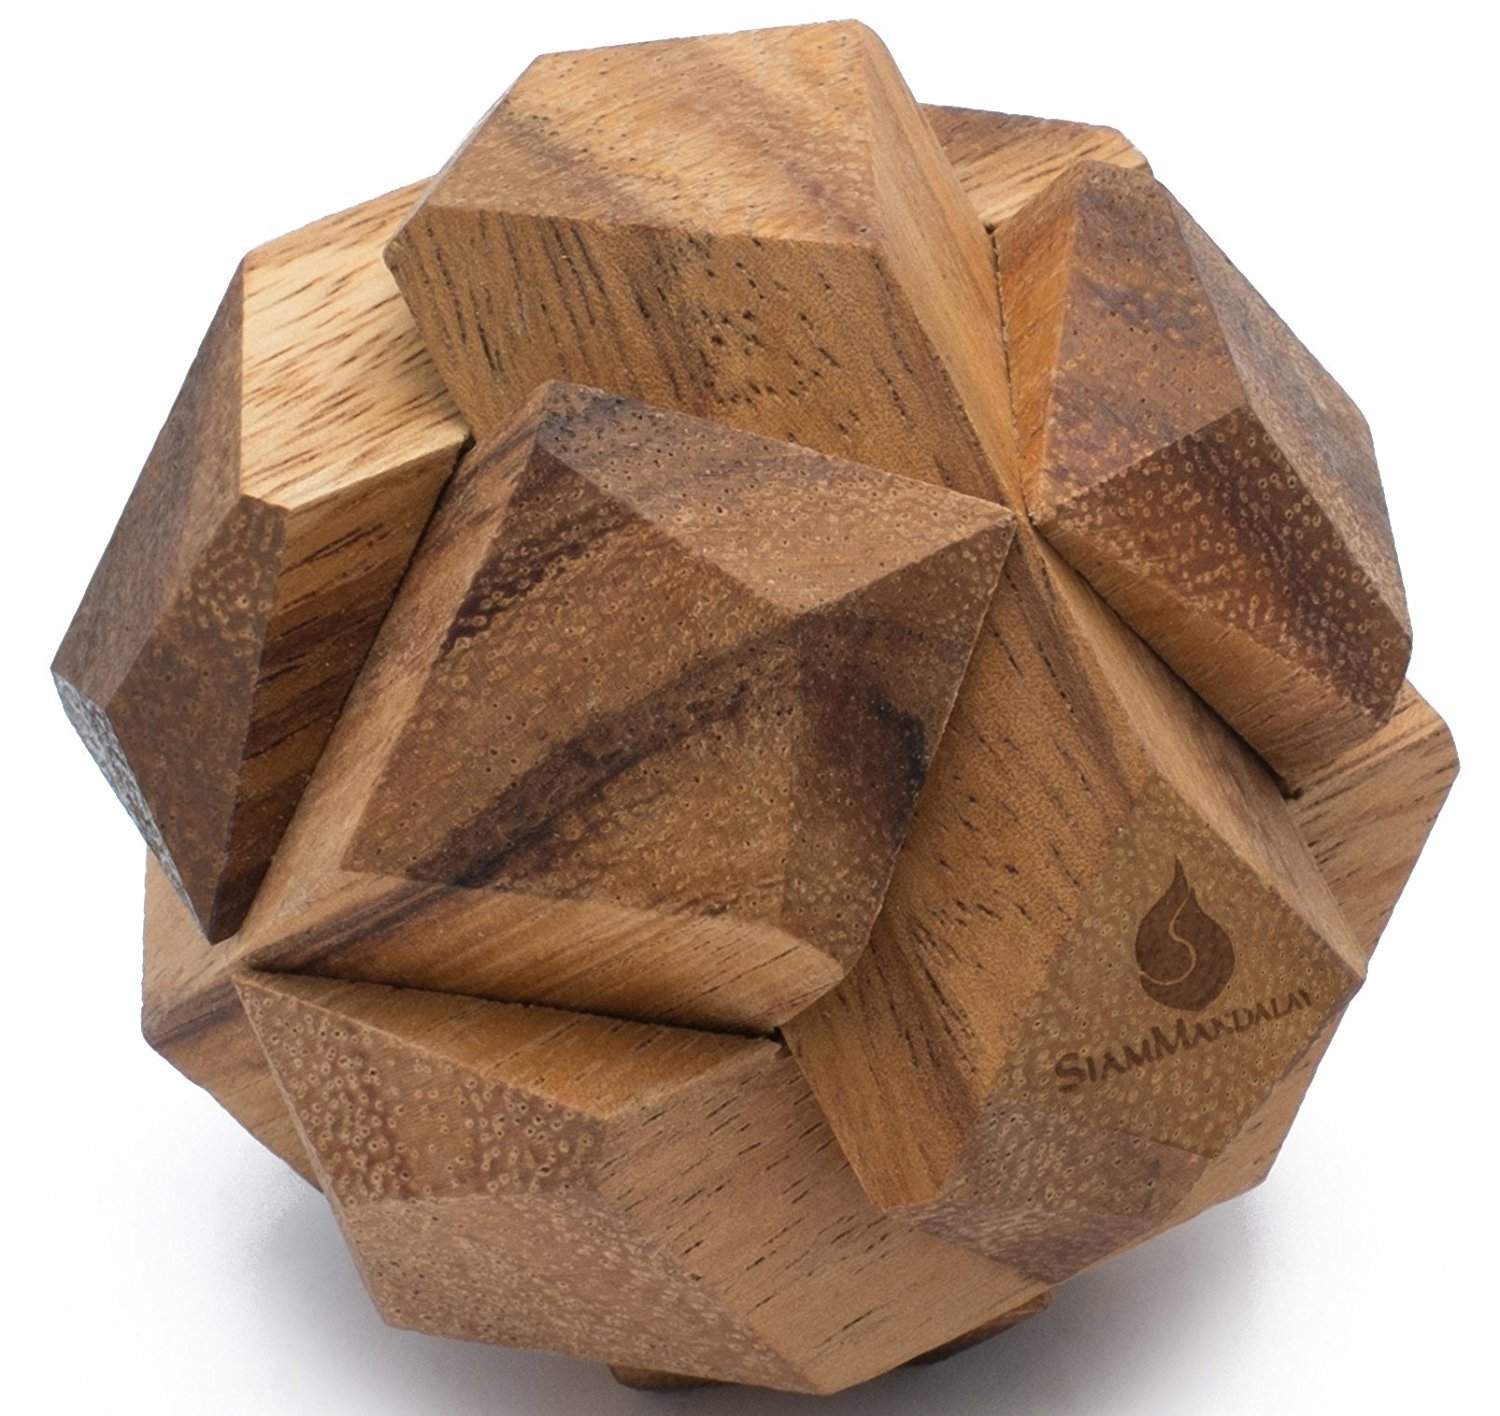 Handmade /& Organic 3D Brain Teaser Wooden Puzzle for Adults from SiamMandalay with SM Gift Box Galactic Pictured